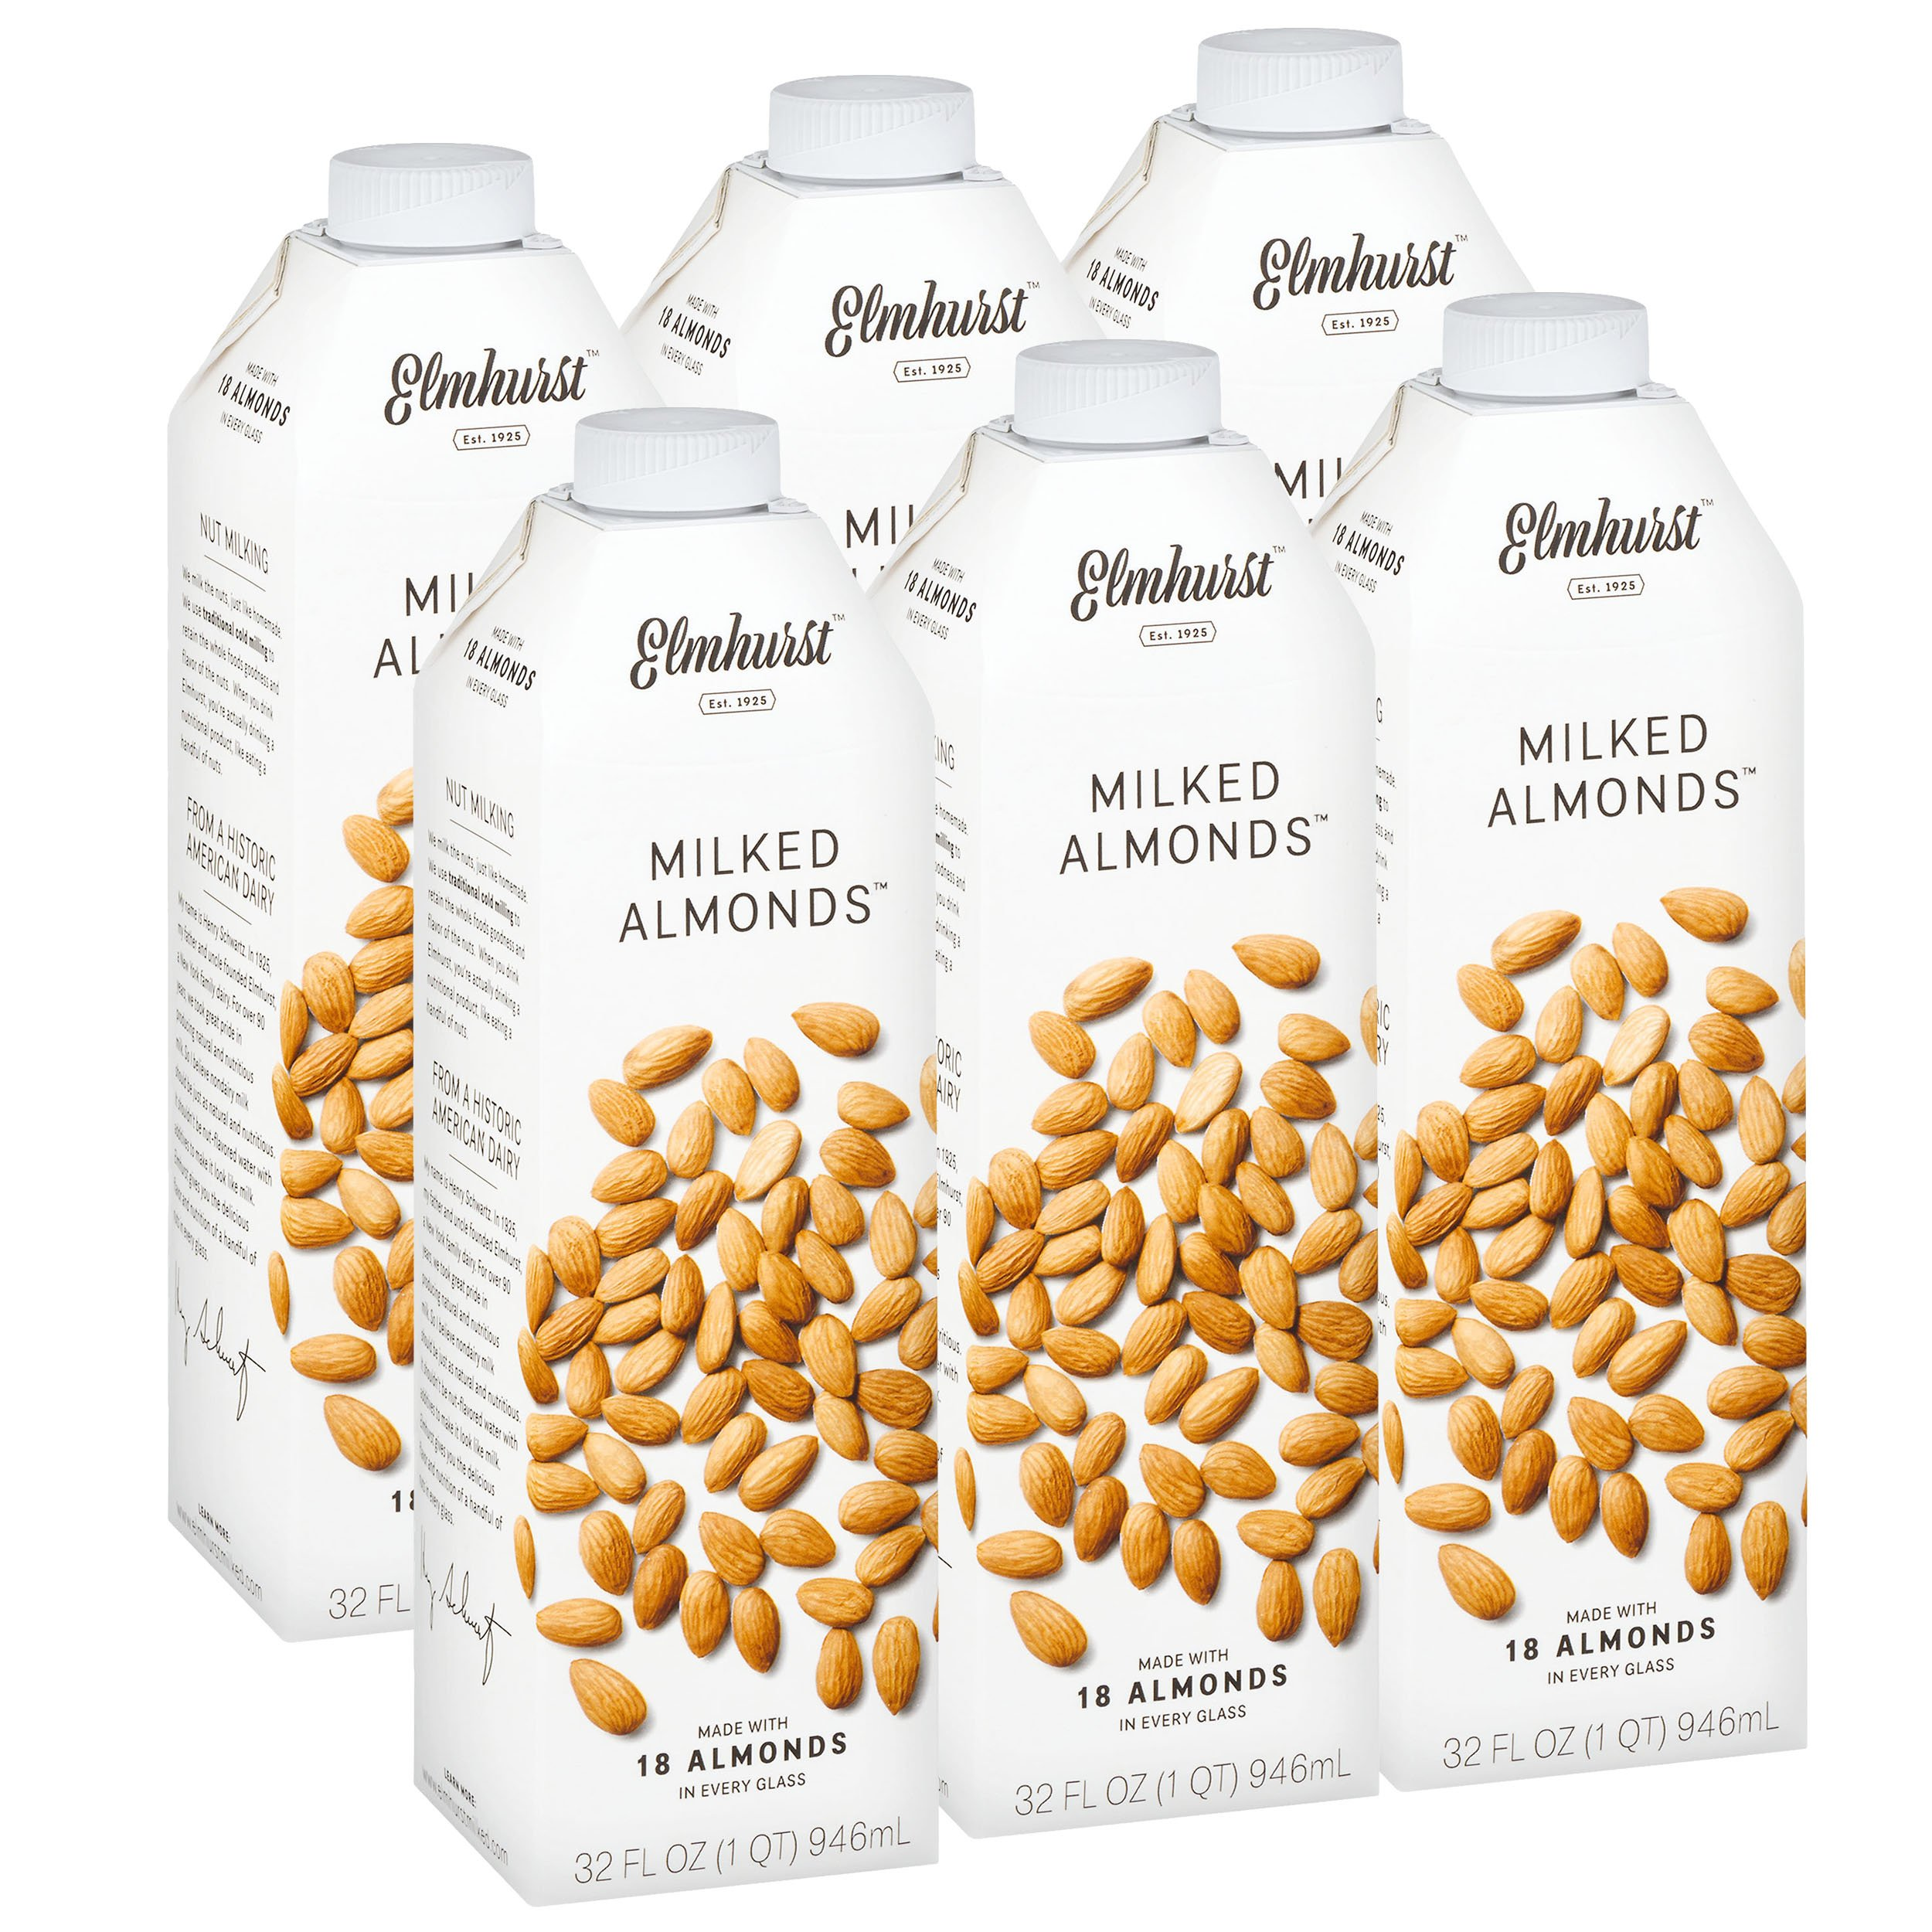 Elmhurst Milked - Almond Milk - 32 Fluid Ounces (Pack of 6) Only 5 Ingredients, 4X the Protein, Non Dairy, Keto Friendly, No Added Gums or Emulsifiers, Vegan by Elmhurst (Image #1)